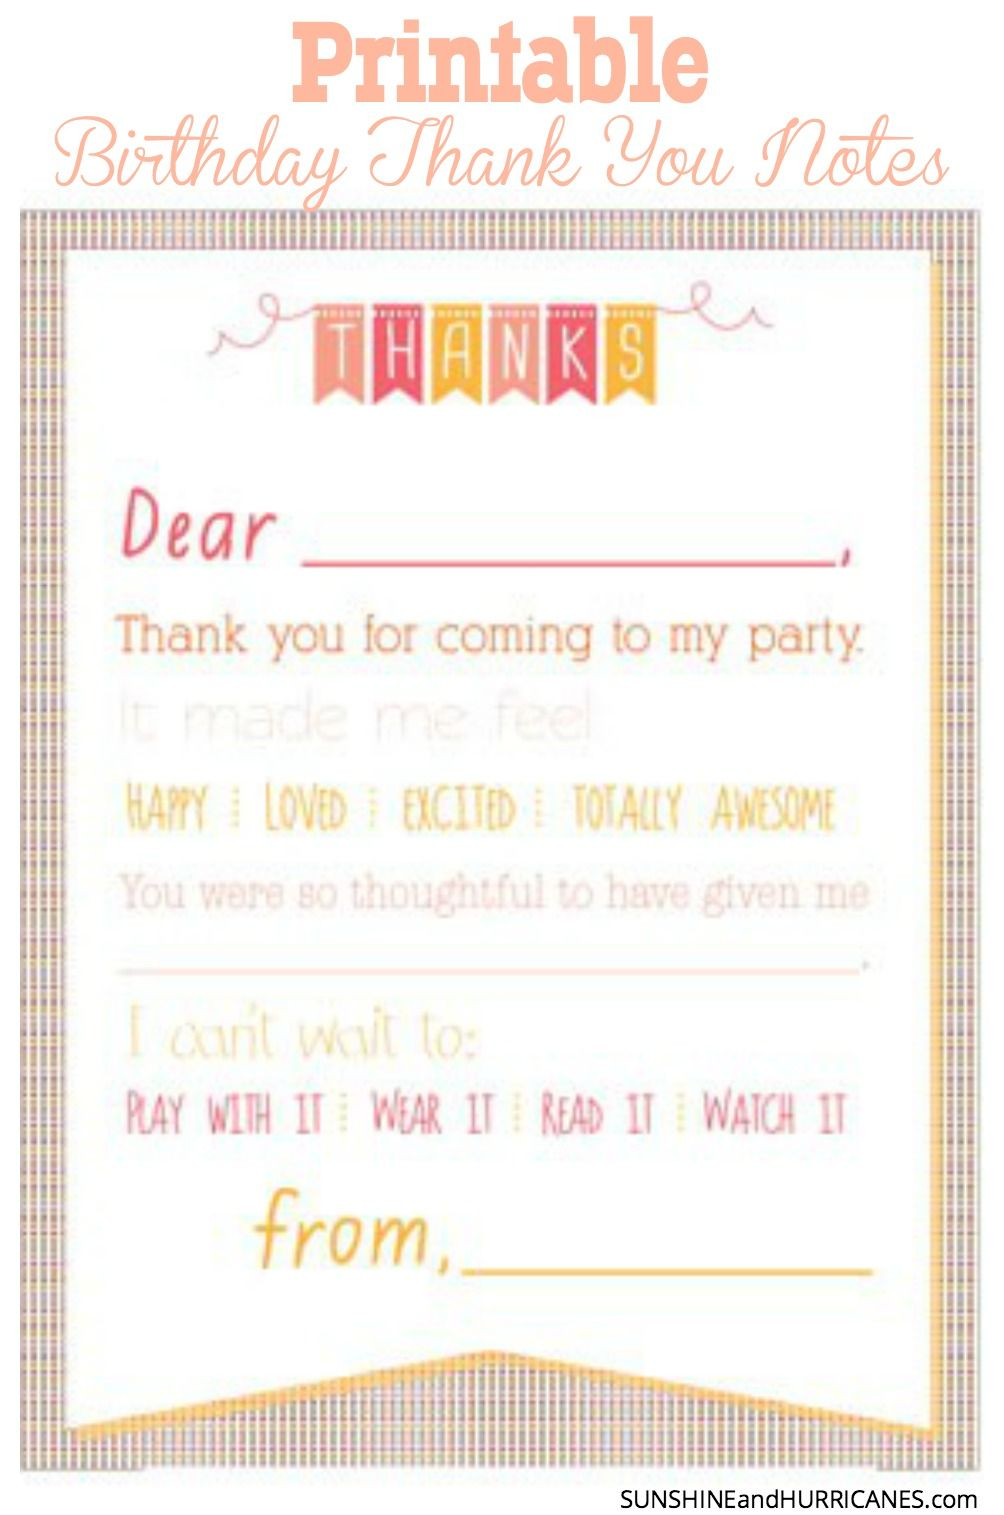 Looking For A Cute And Simple Way To Take Care Of Thank You Notes Childs Birthday Want Them Have Good Manners But Writing All Those